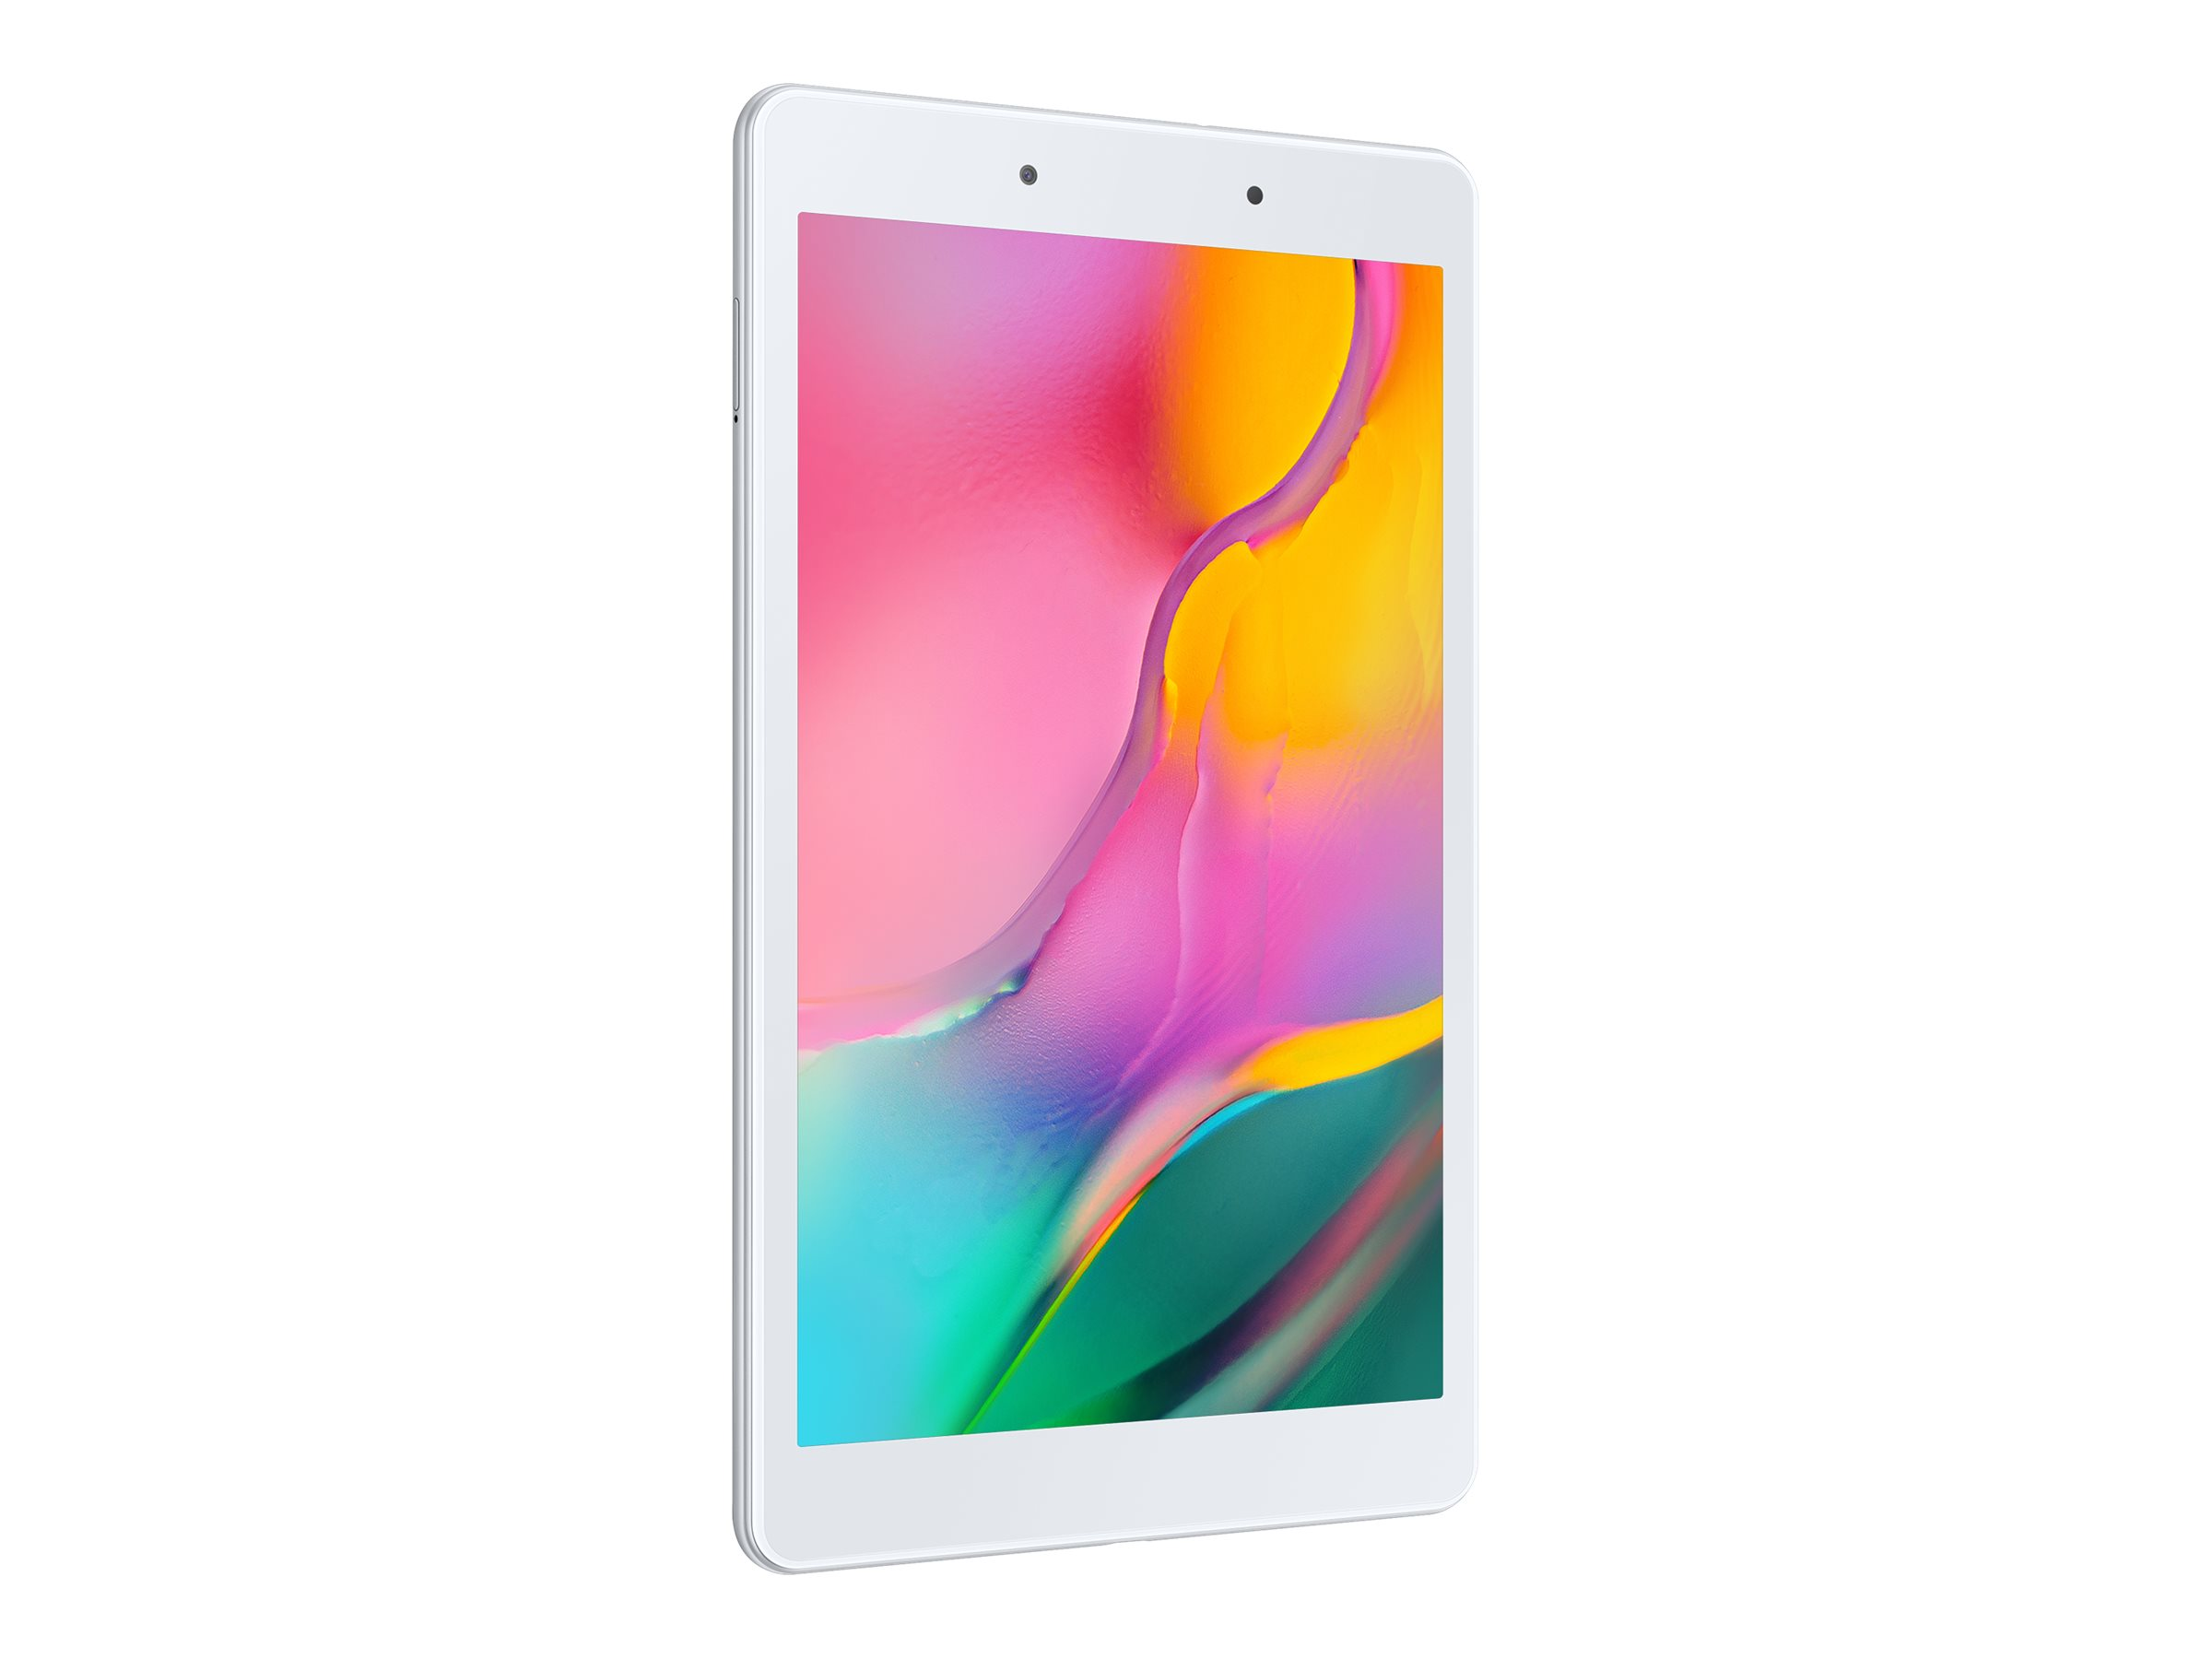 Samsung Galaxy Tab A (2019) - tablet - Android 9.0 (Pie) - 32 GB - 8""